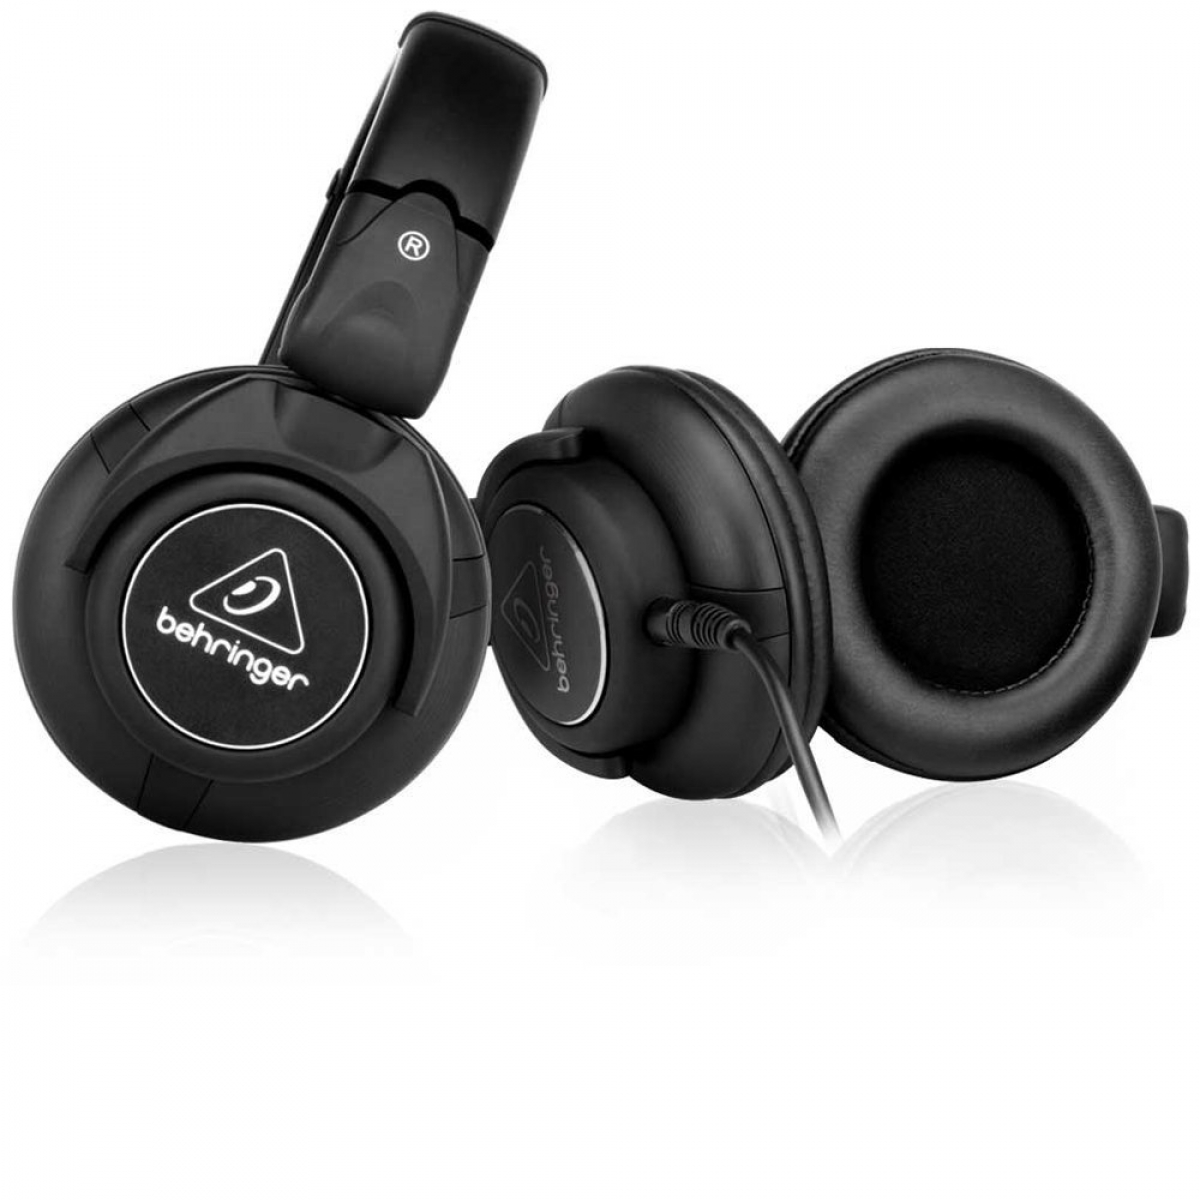 headphones in ear monitoring satchman shop malaysia 39 s 1 online store for musical. Black Bedroom Furniture Sets. Home Design Ideas